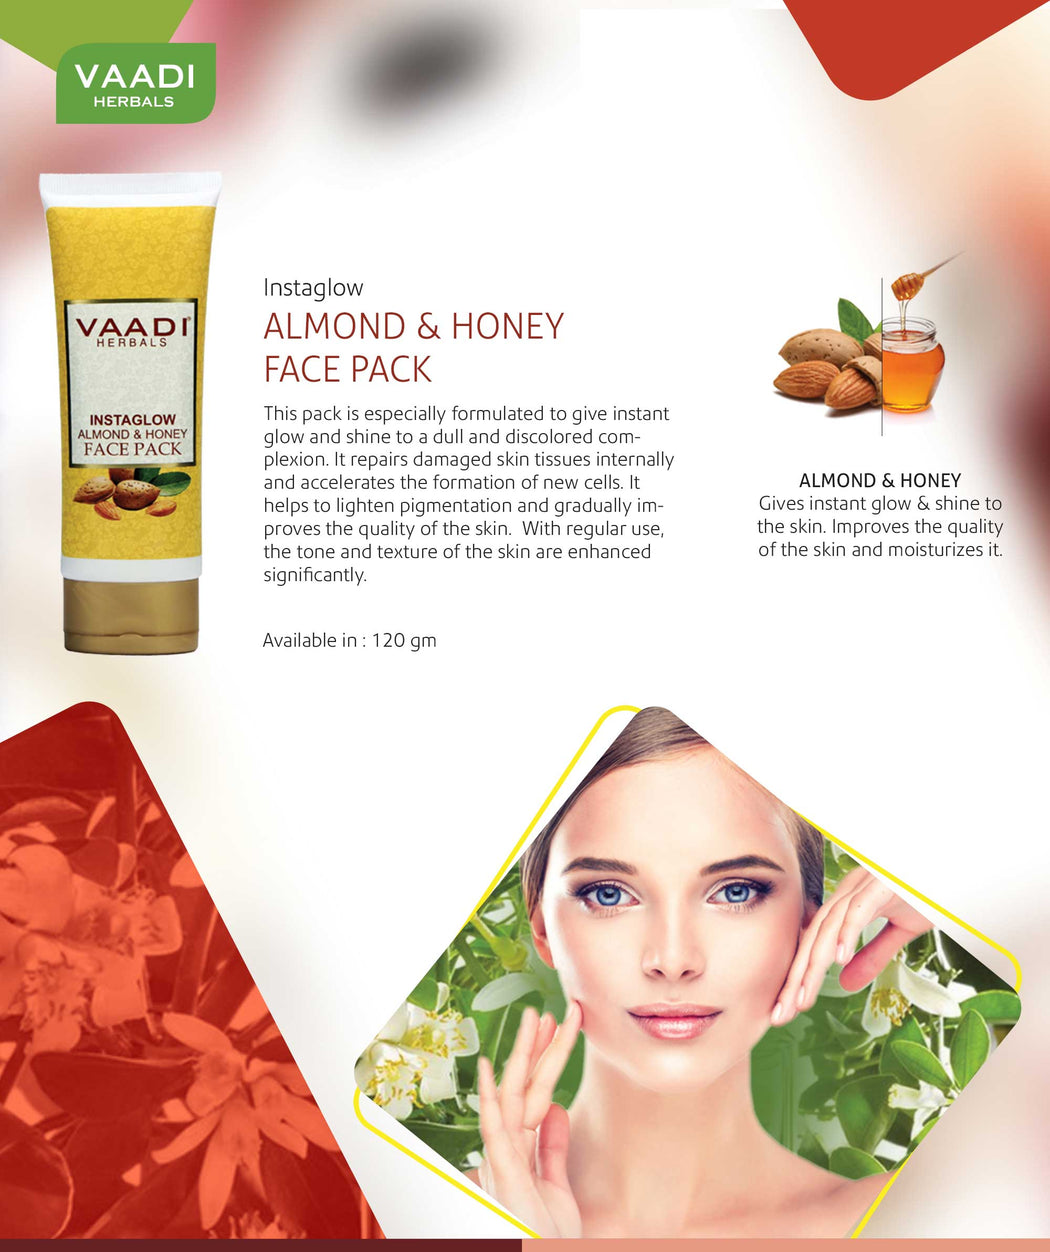 Organic InstaGlow Face Pack with Almond & Honey - Lightens Pigmentation - Gives Instant Glow (2 x 120 gms /4.3 oz)